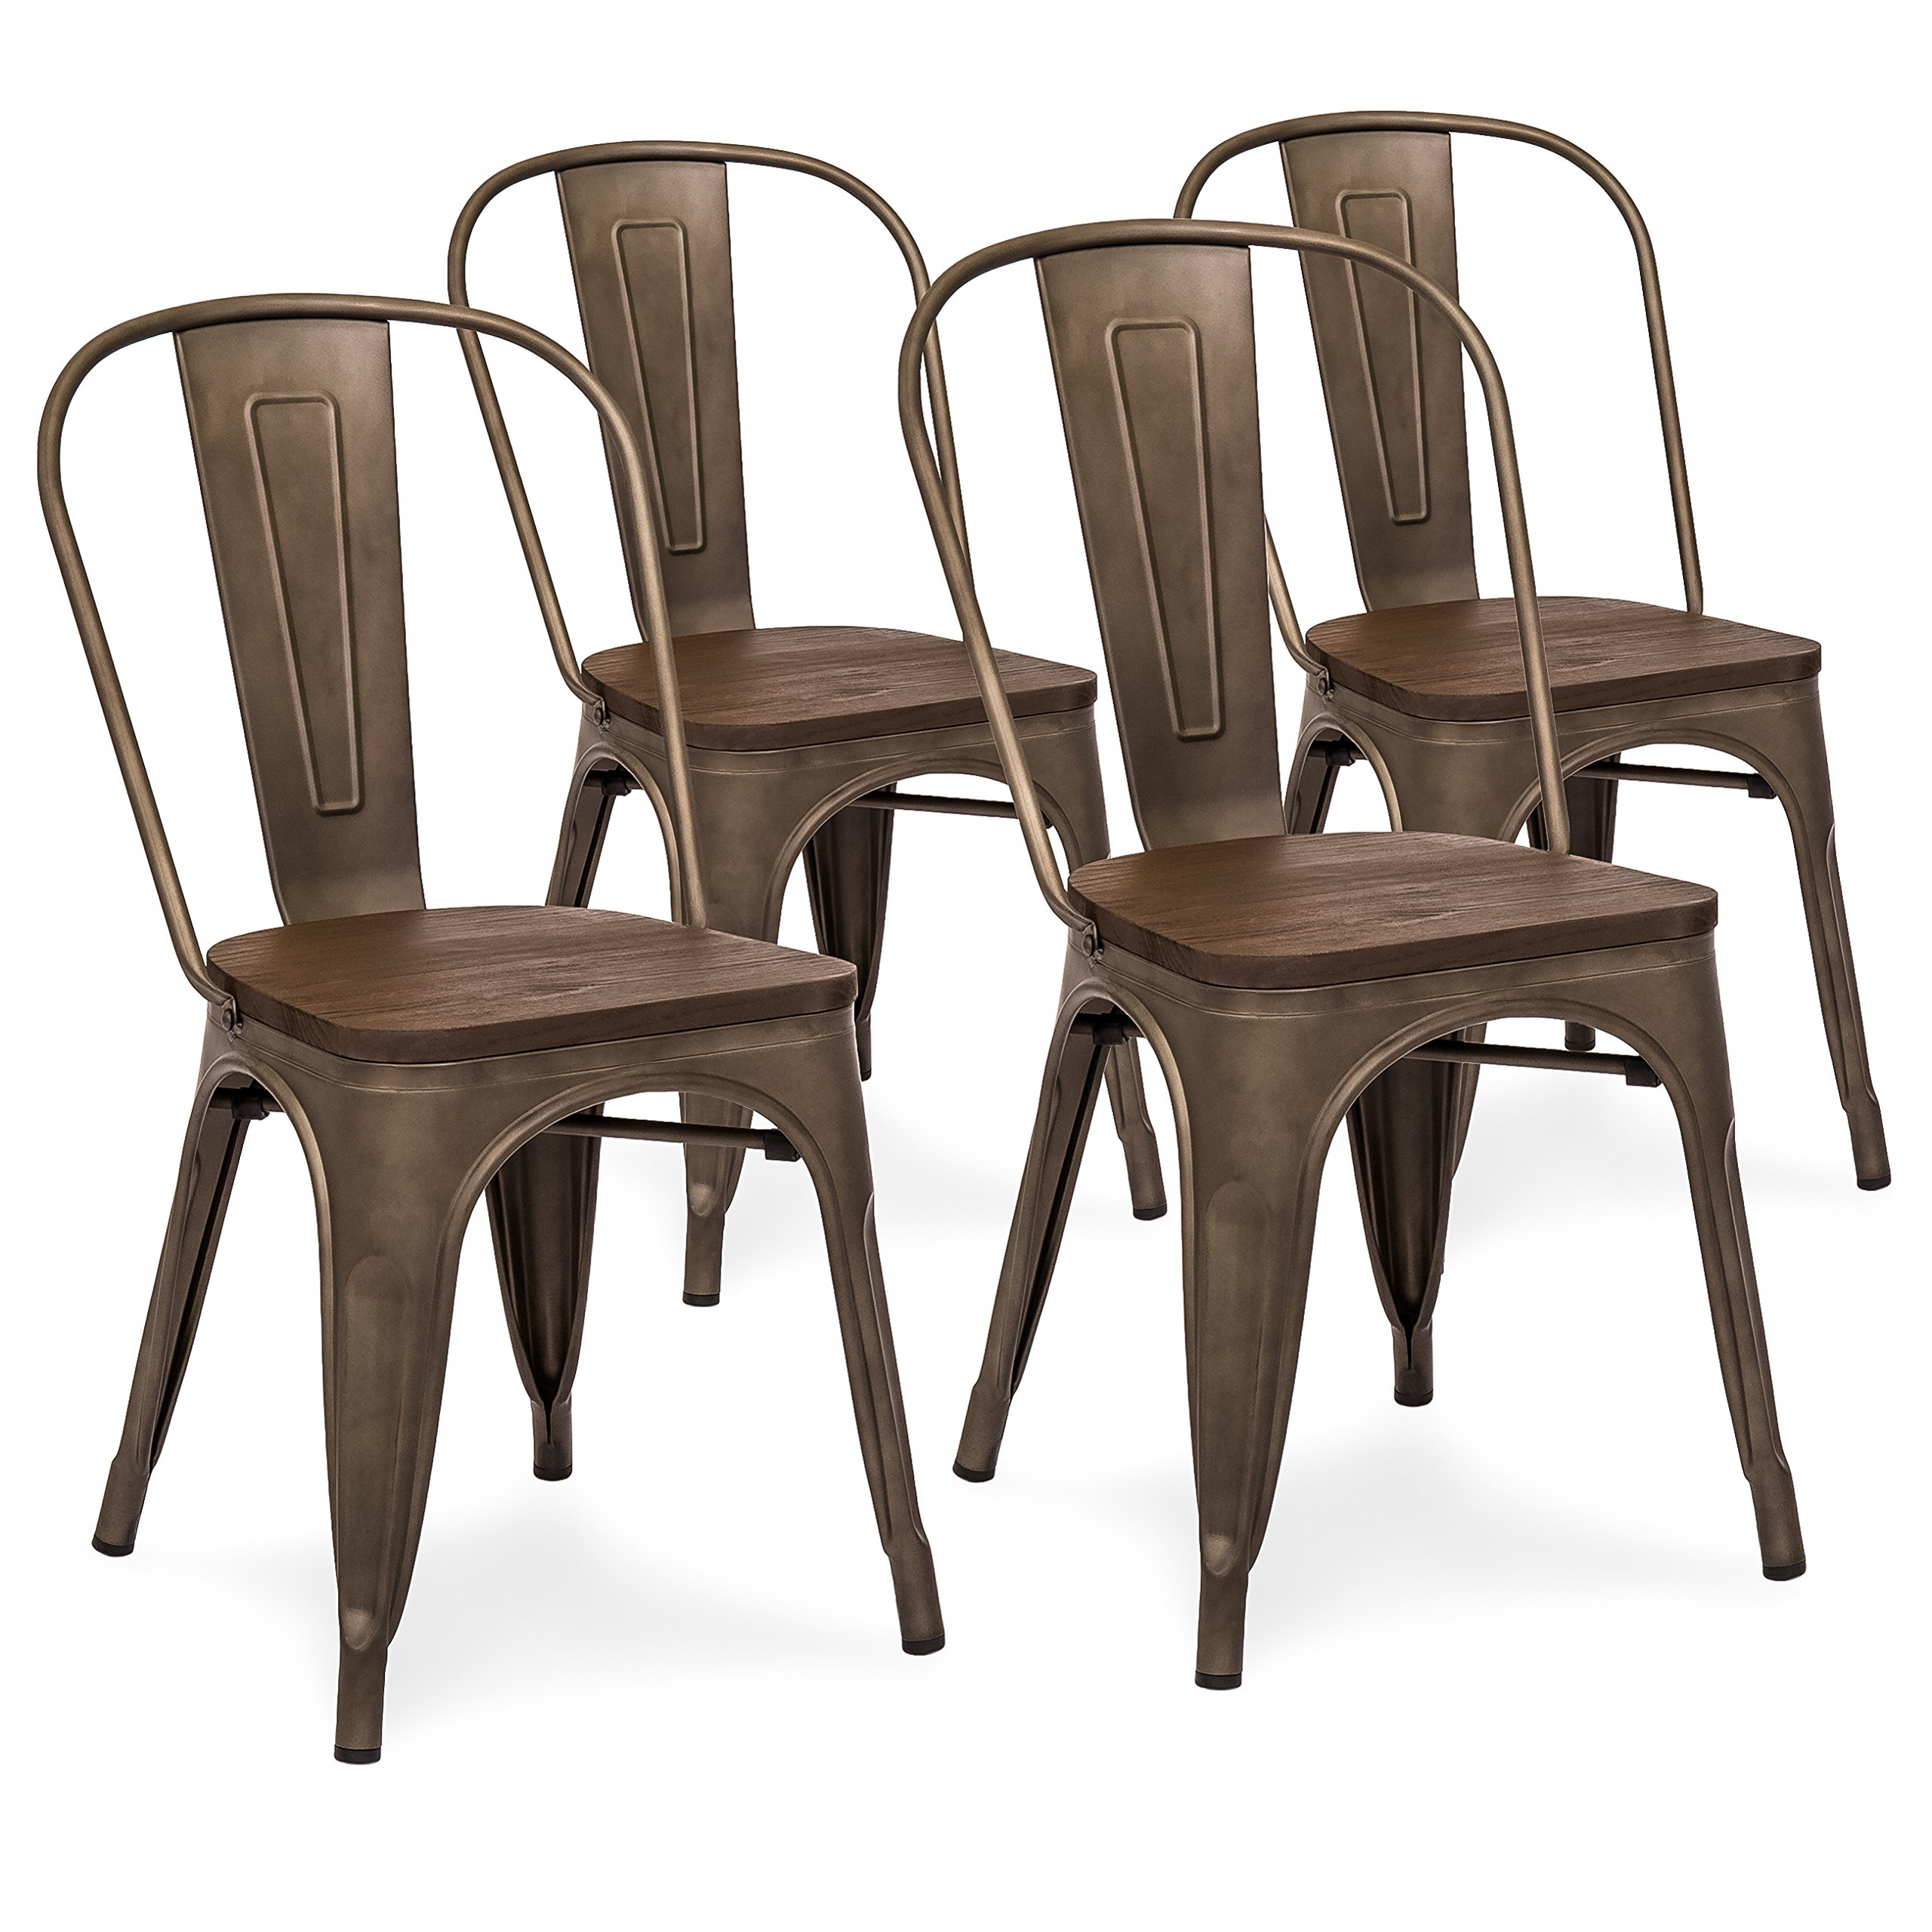 Best Choice Products Set Of 4 Industrial Distressed Metal Bistro Dining Side Chairs w/ Wood Seat (Copper Bronze)